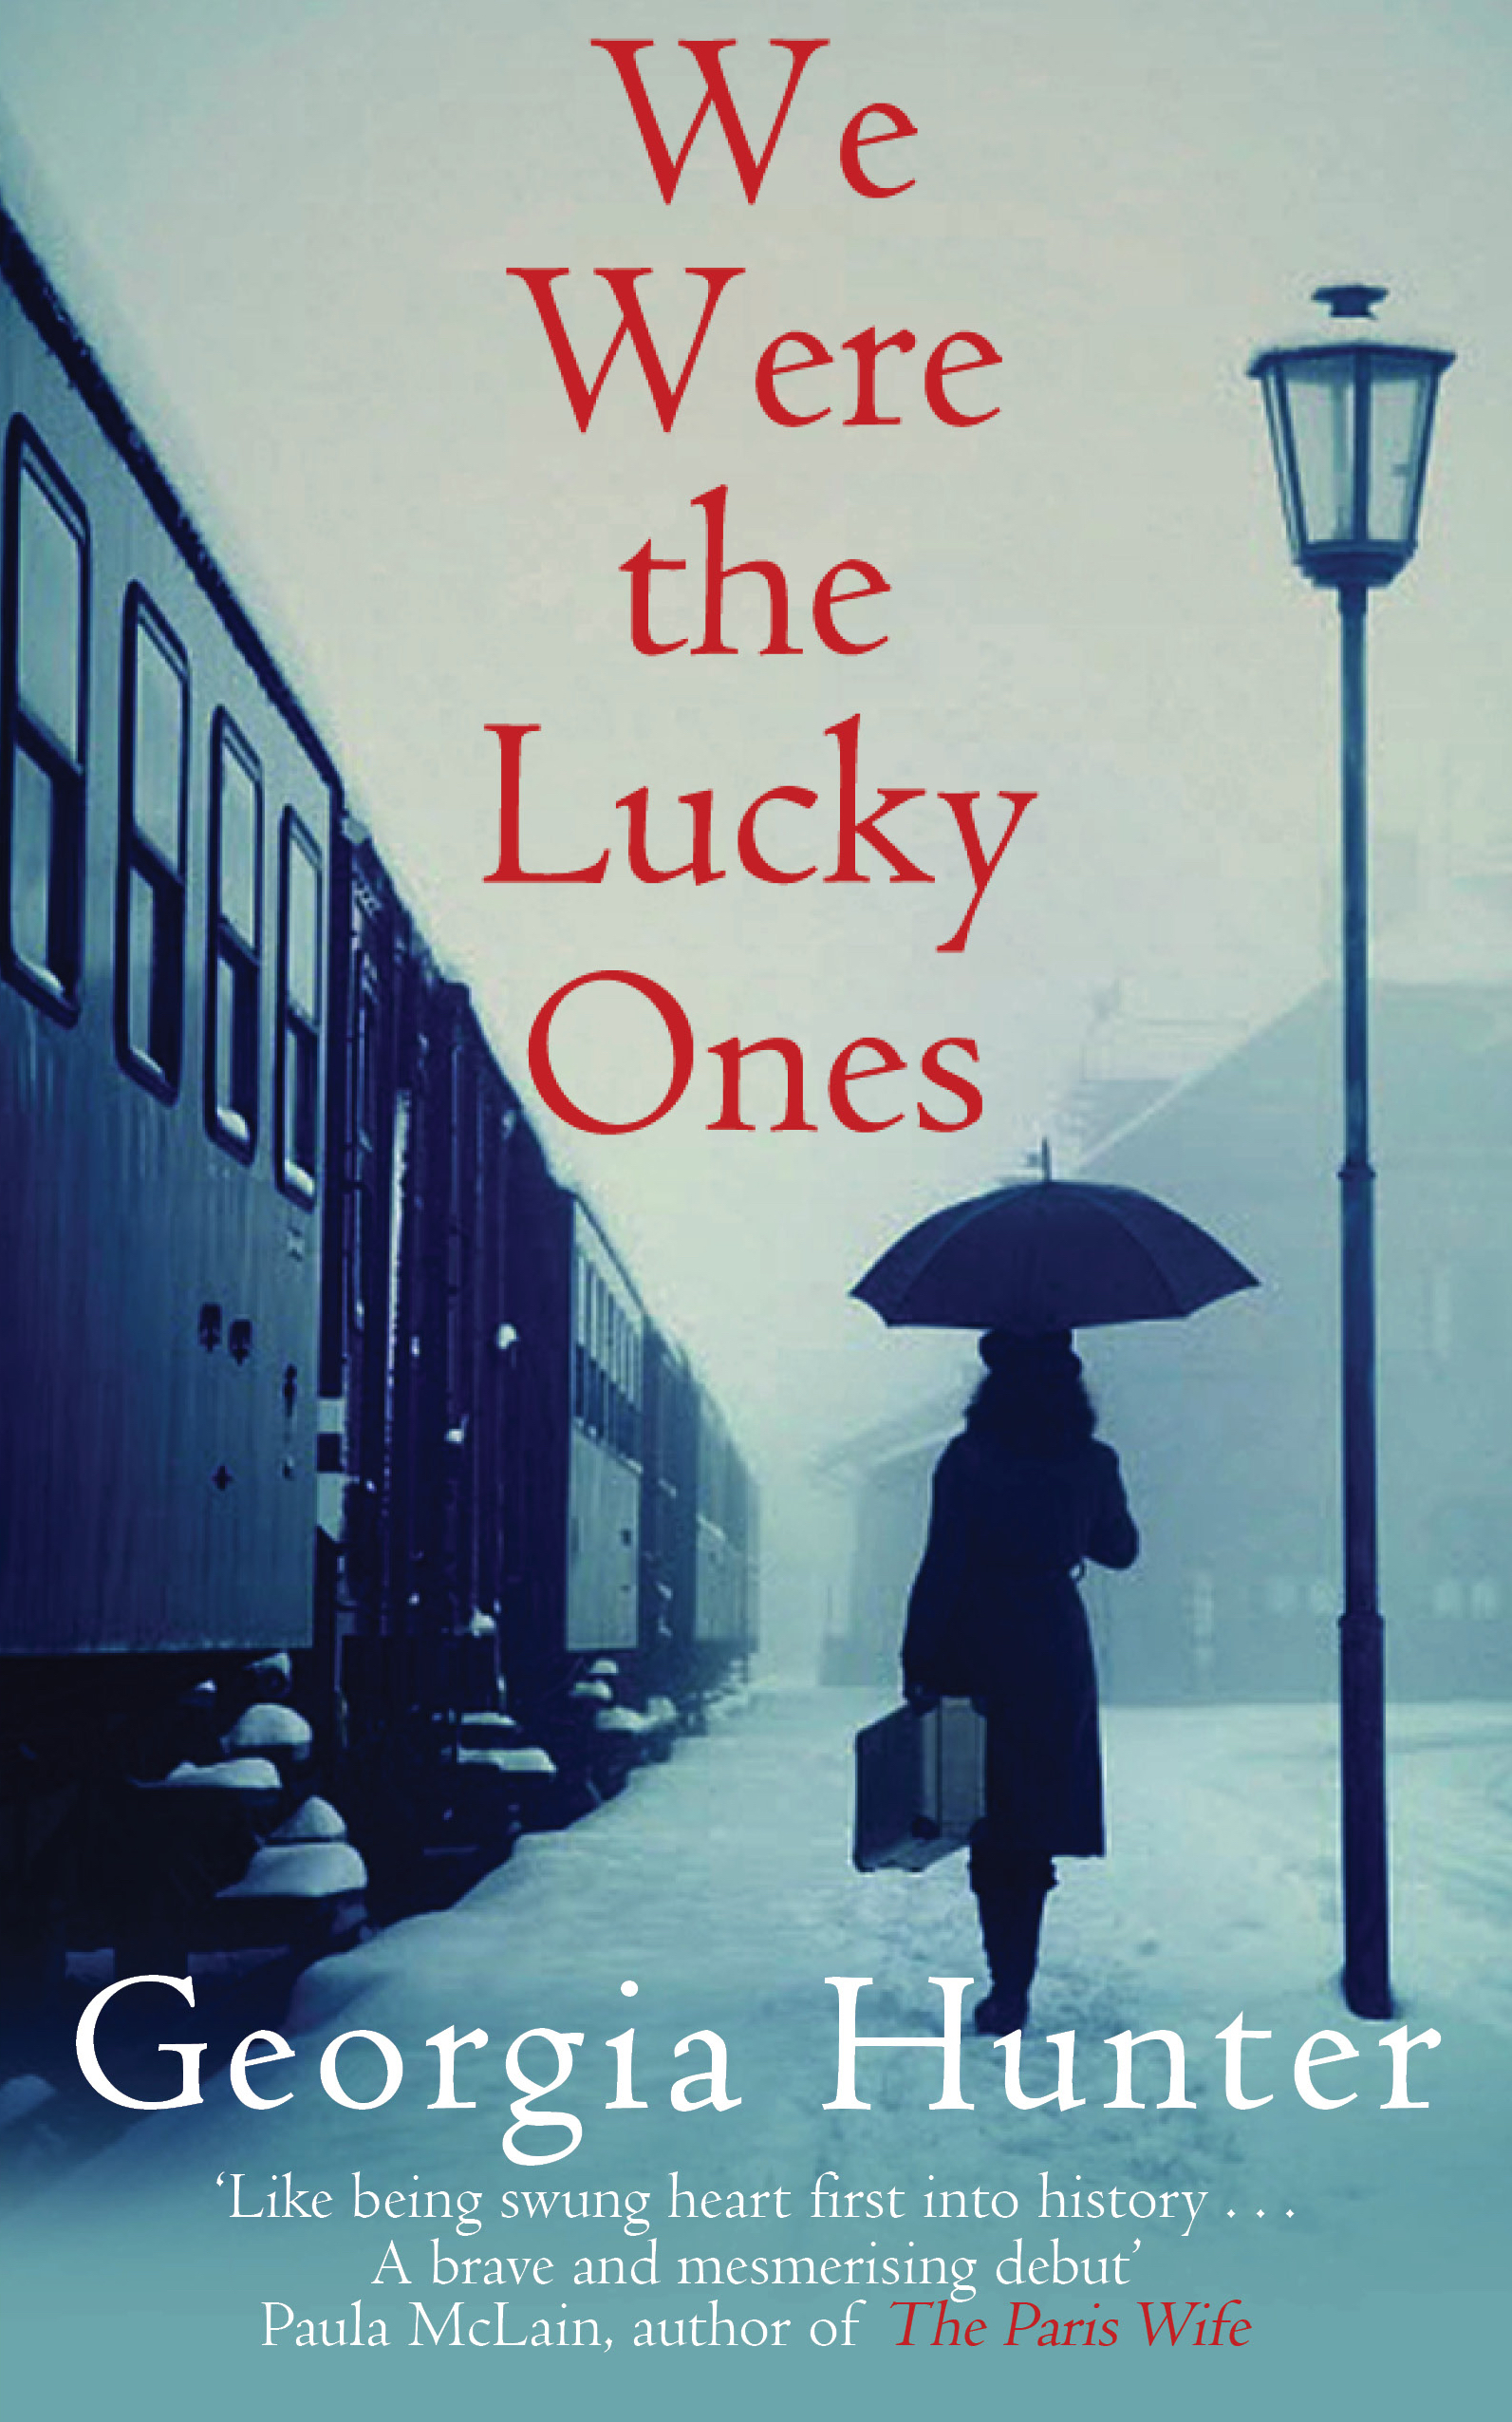 We Were the Lucky Ones by Georgia Hunter